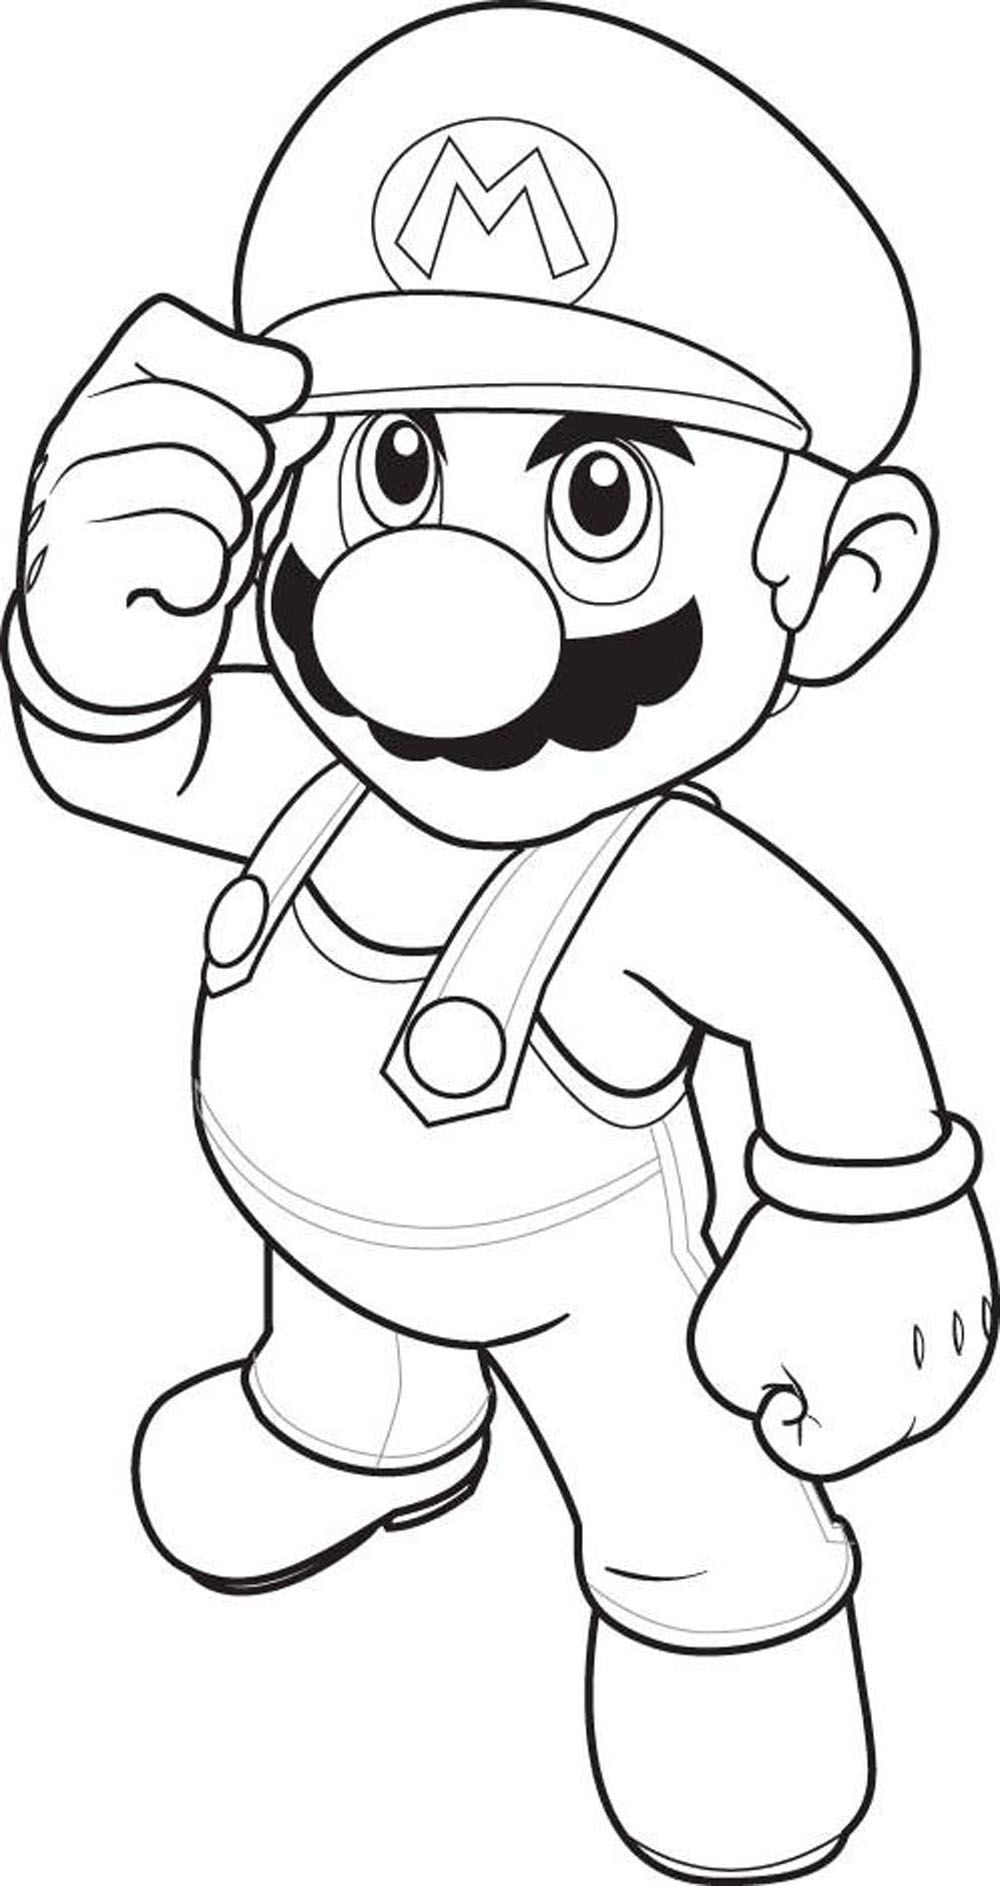 mario characters coloring pages - photo#3